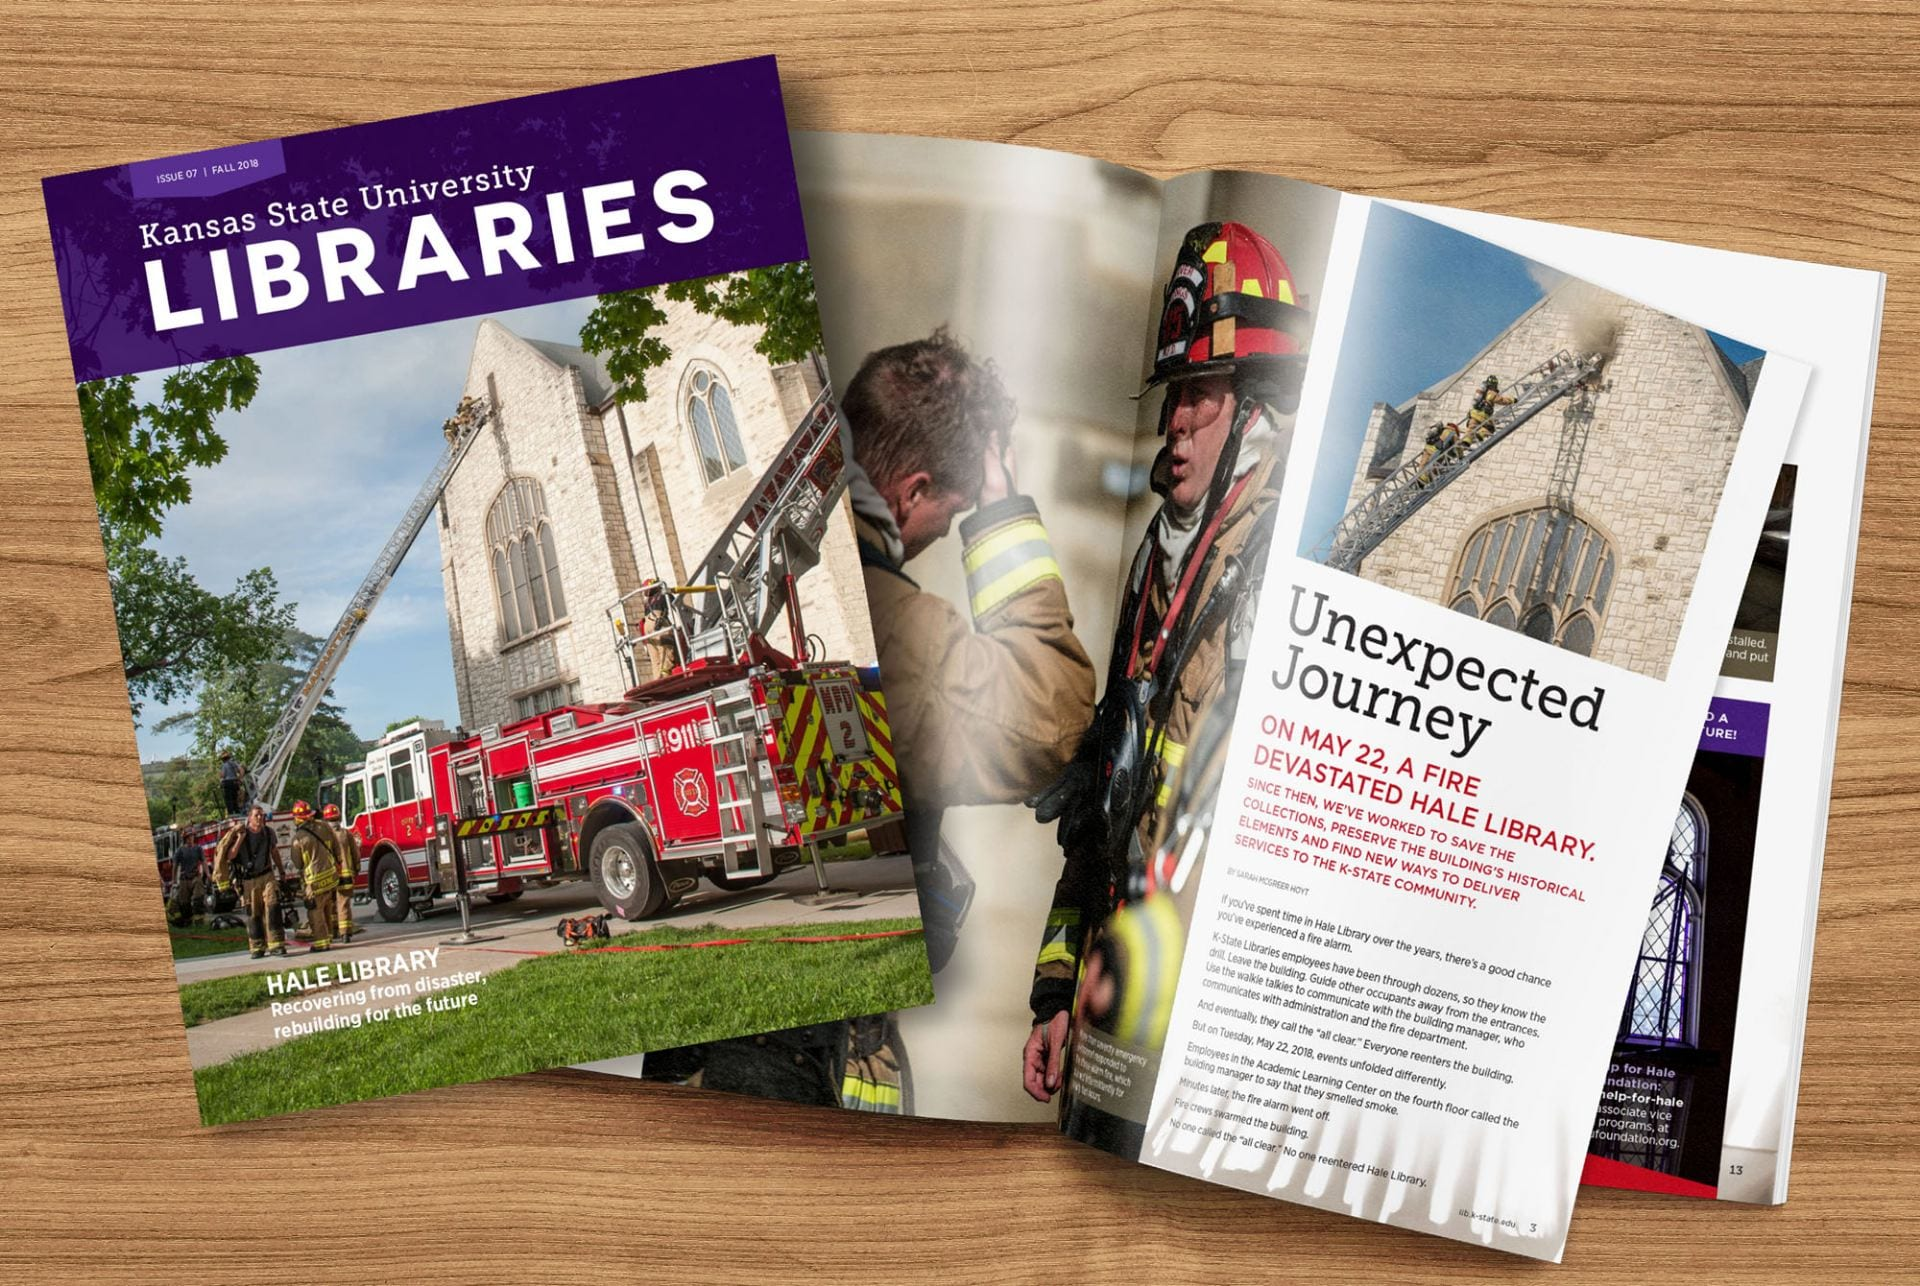 Two issues of K-State Libraries Magazine, one open and one closed, lie on a wooden surface. Both feature photos of firefighters outside Hale Library during a fire.